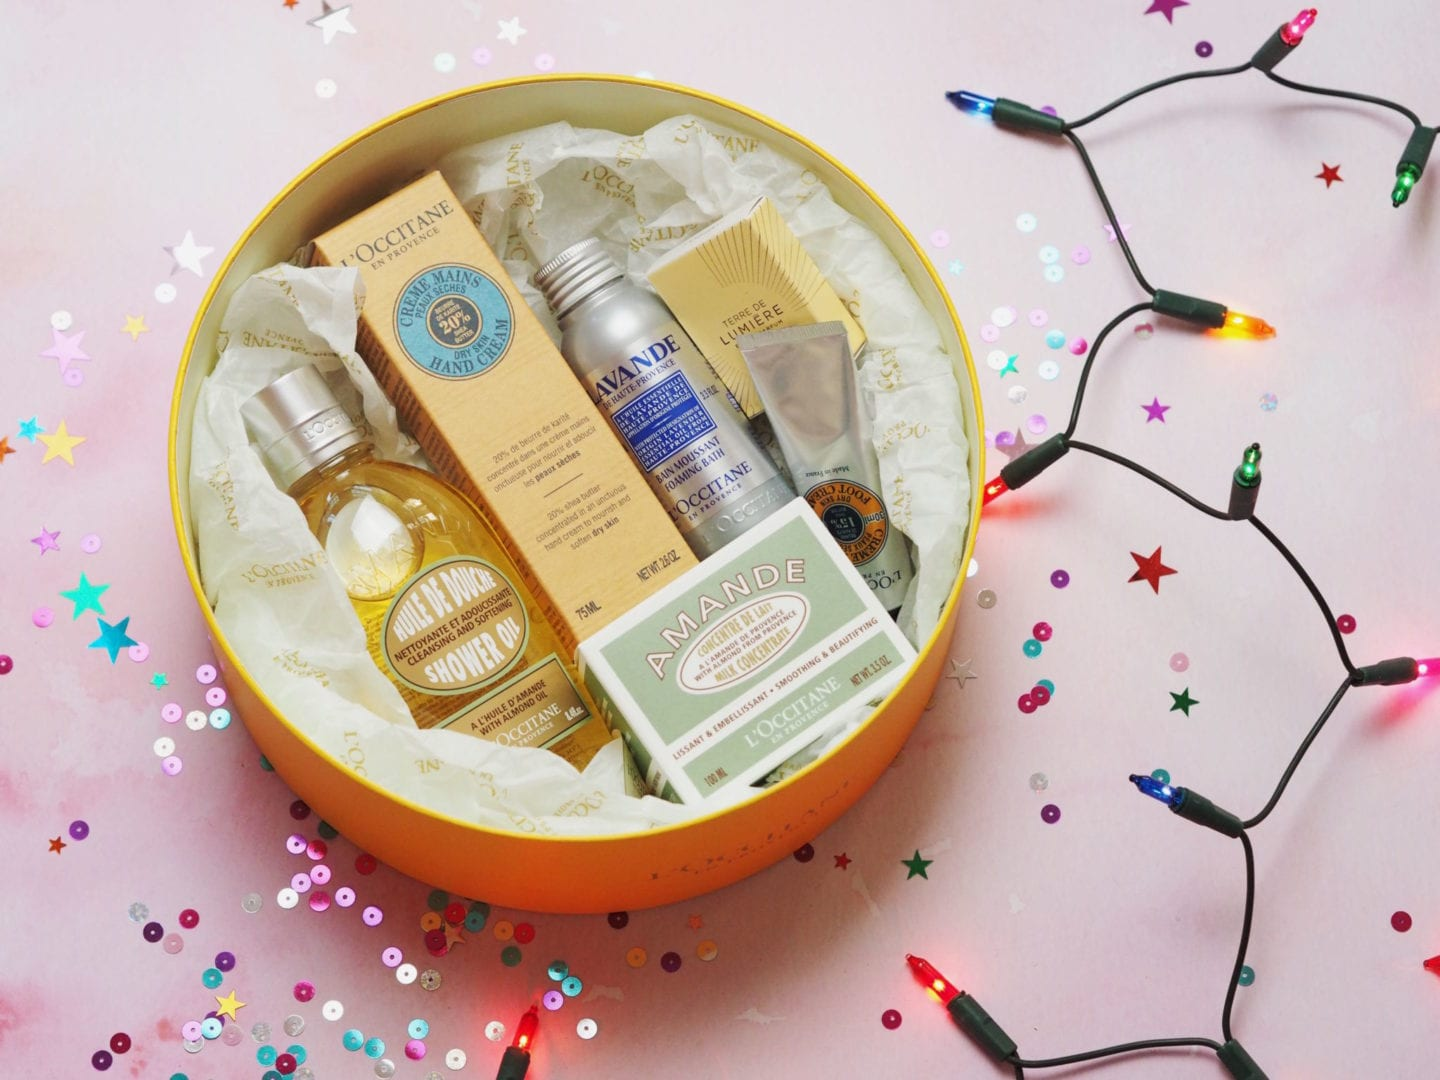 L'Occitane 'The Best Of' Set